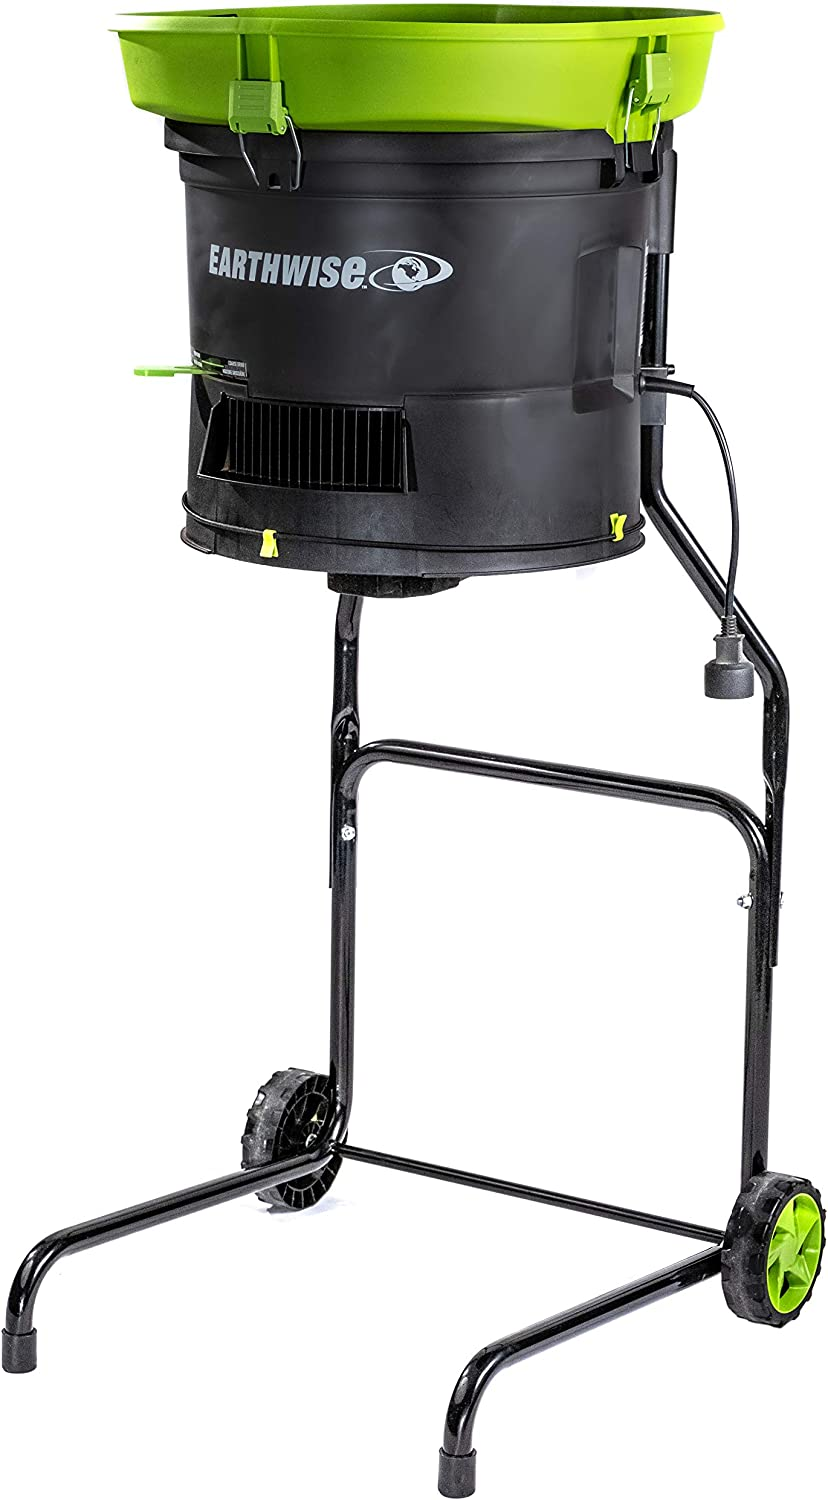 Earthwise LM71313 Amp 13-Inch Corded Electric Leaf Mulcher/Shredder, Green